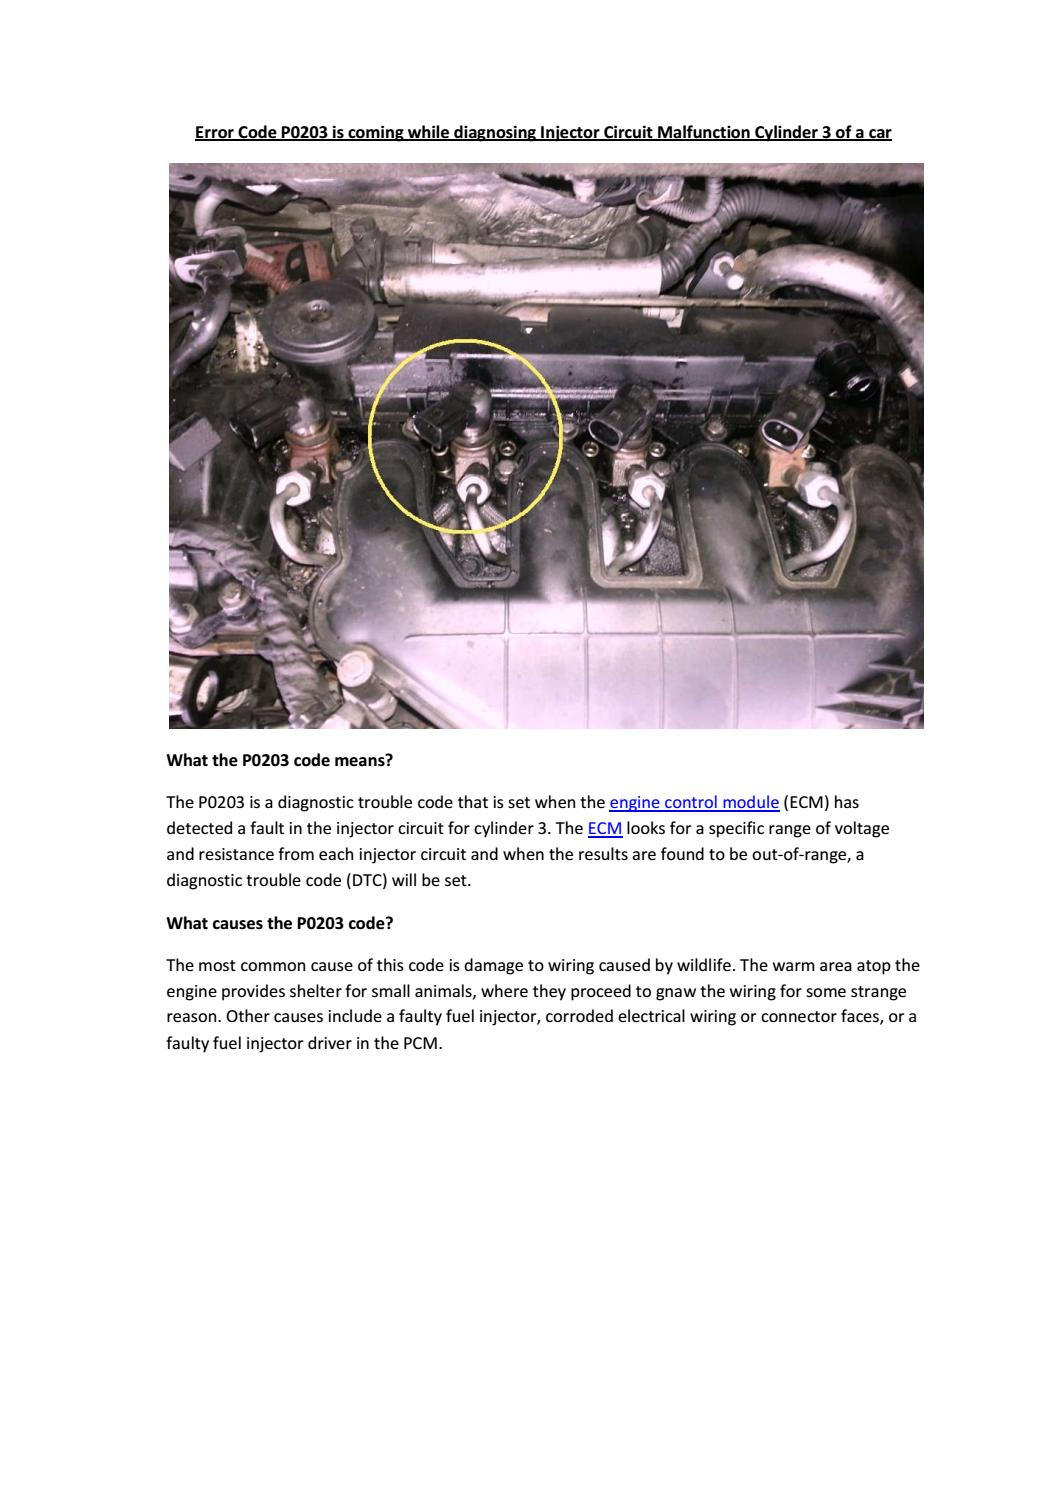 hight resolution of partsavatar car spare parts toronto error code p0203 is coming while diagnosing